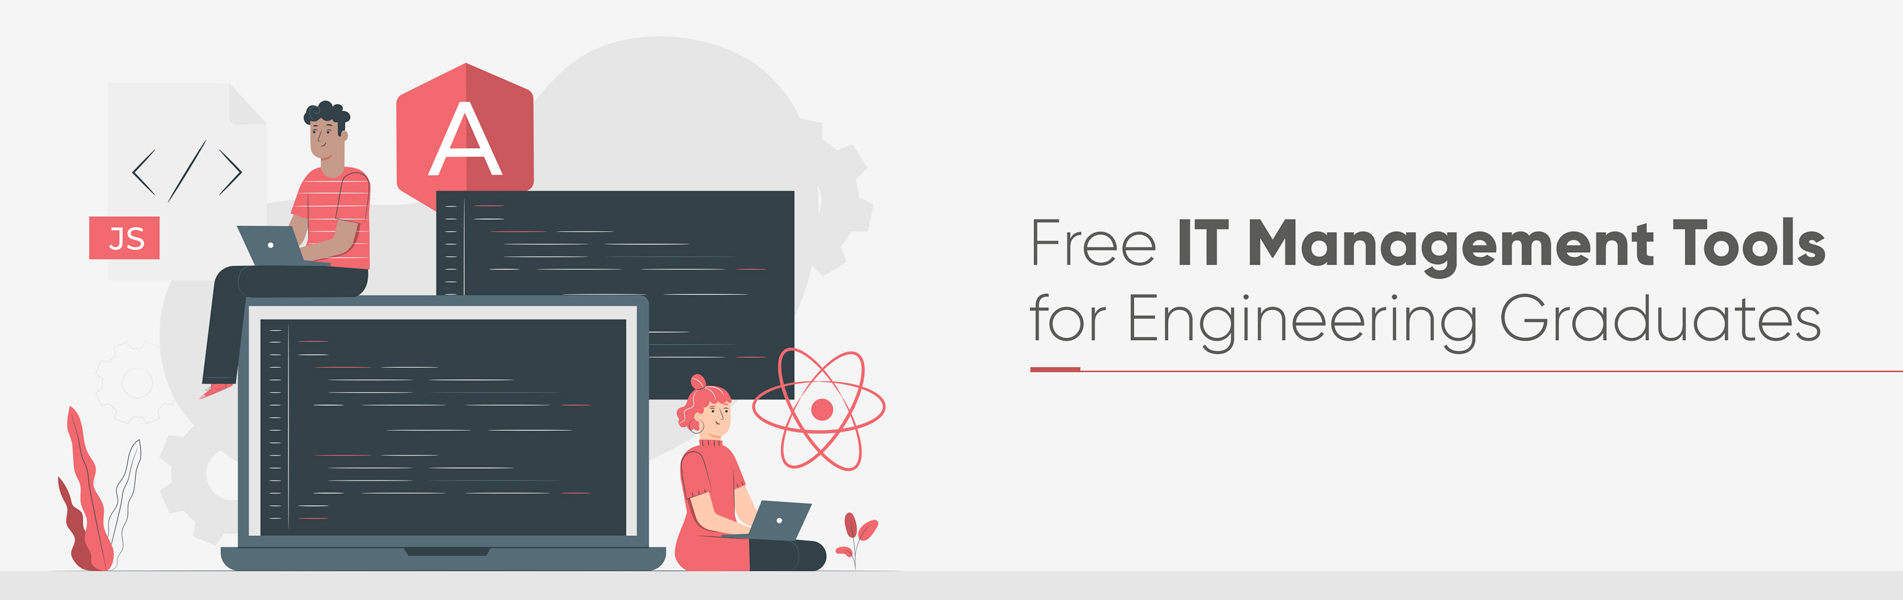 Free IT Management Tools for Engineering Graduates